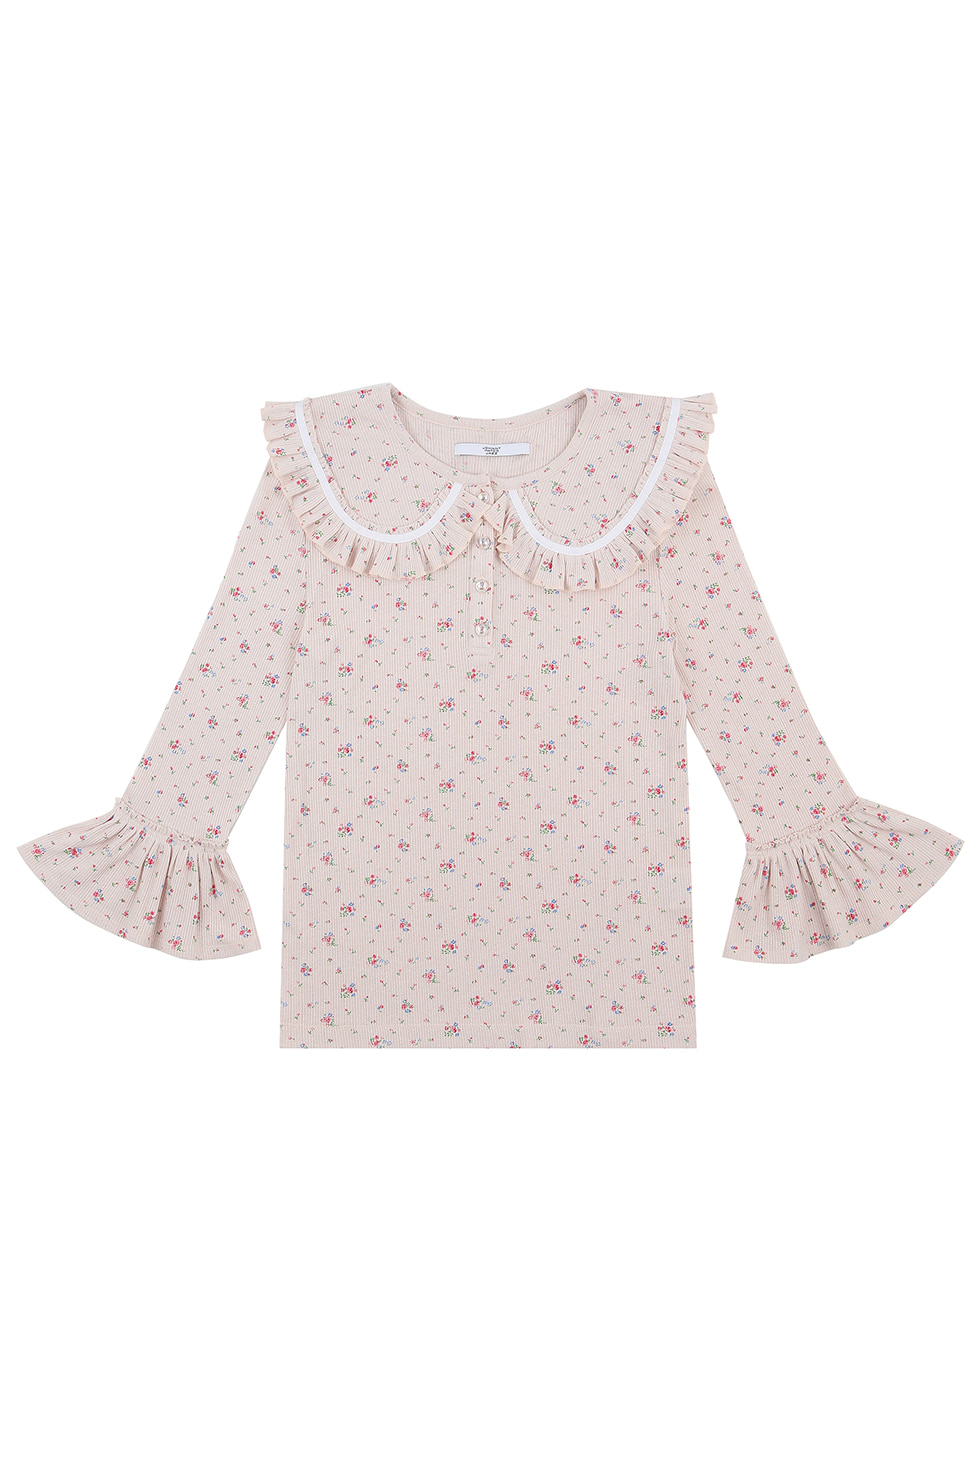 FLORAL JERSEY TOP - PINK